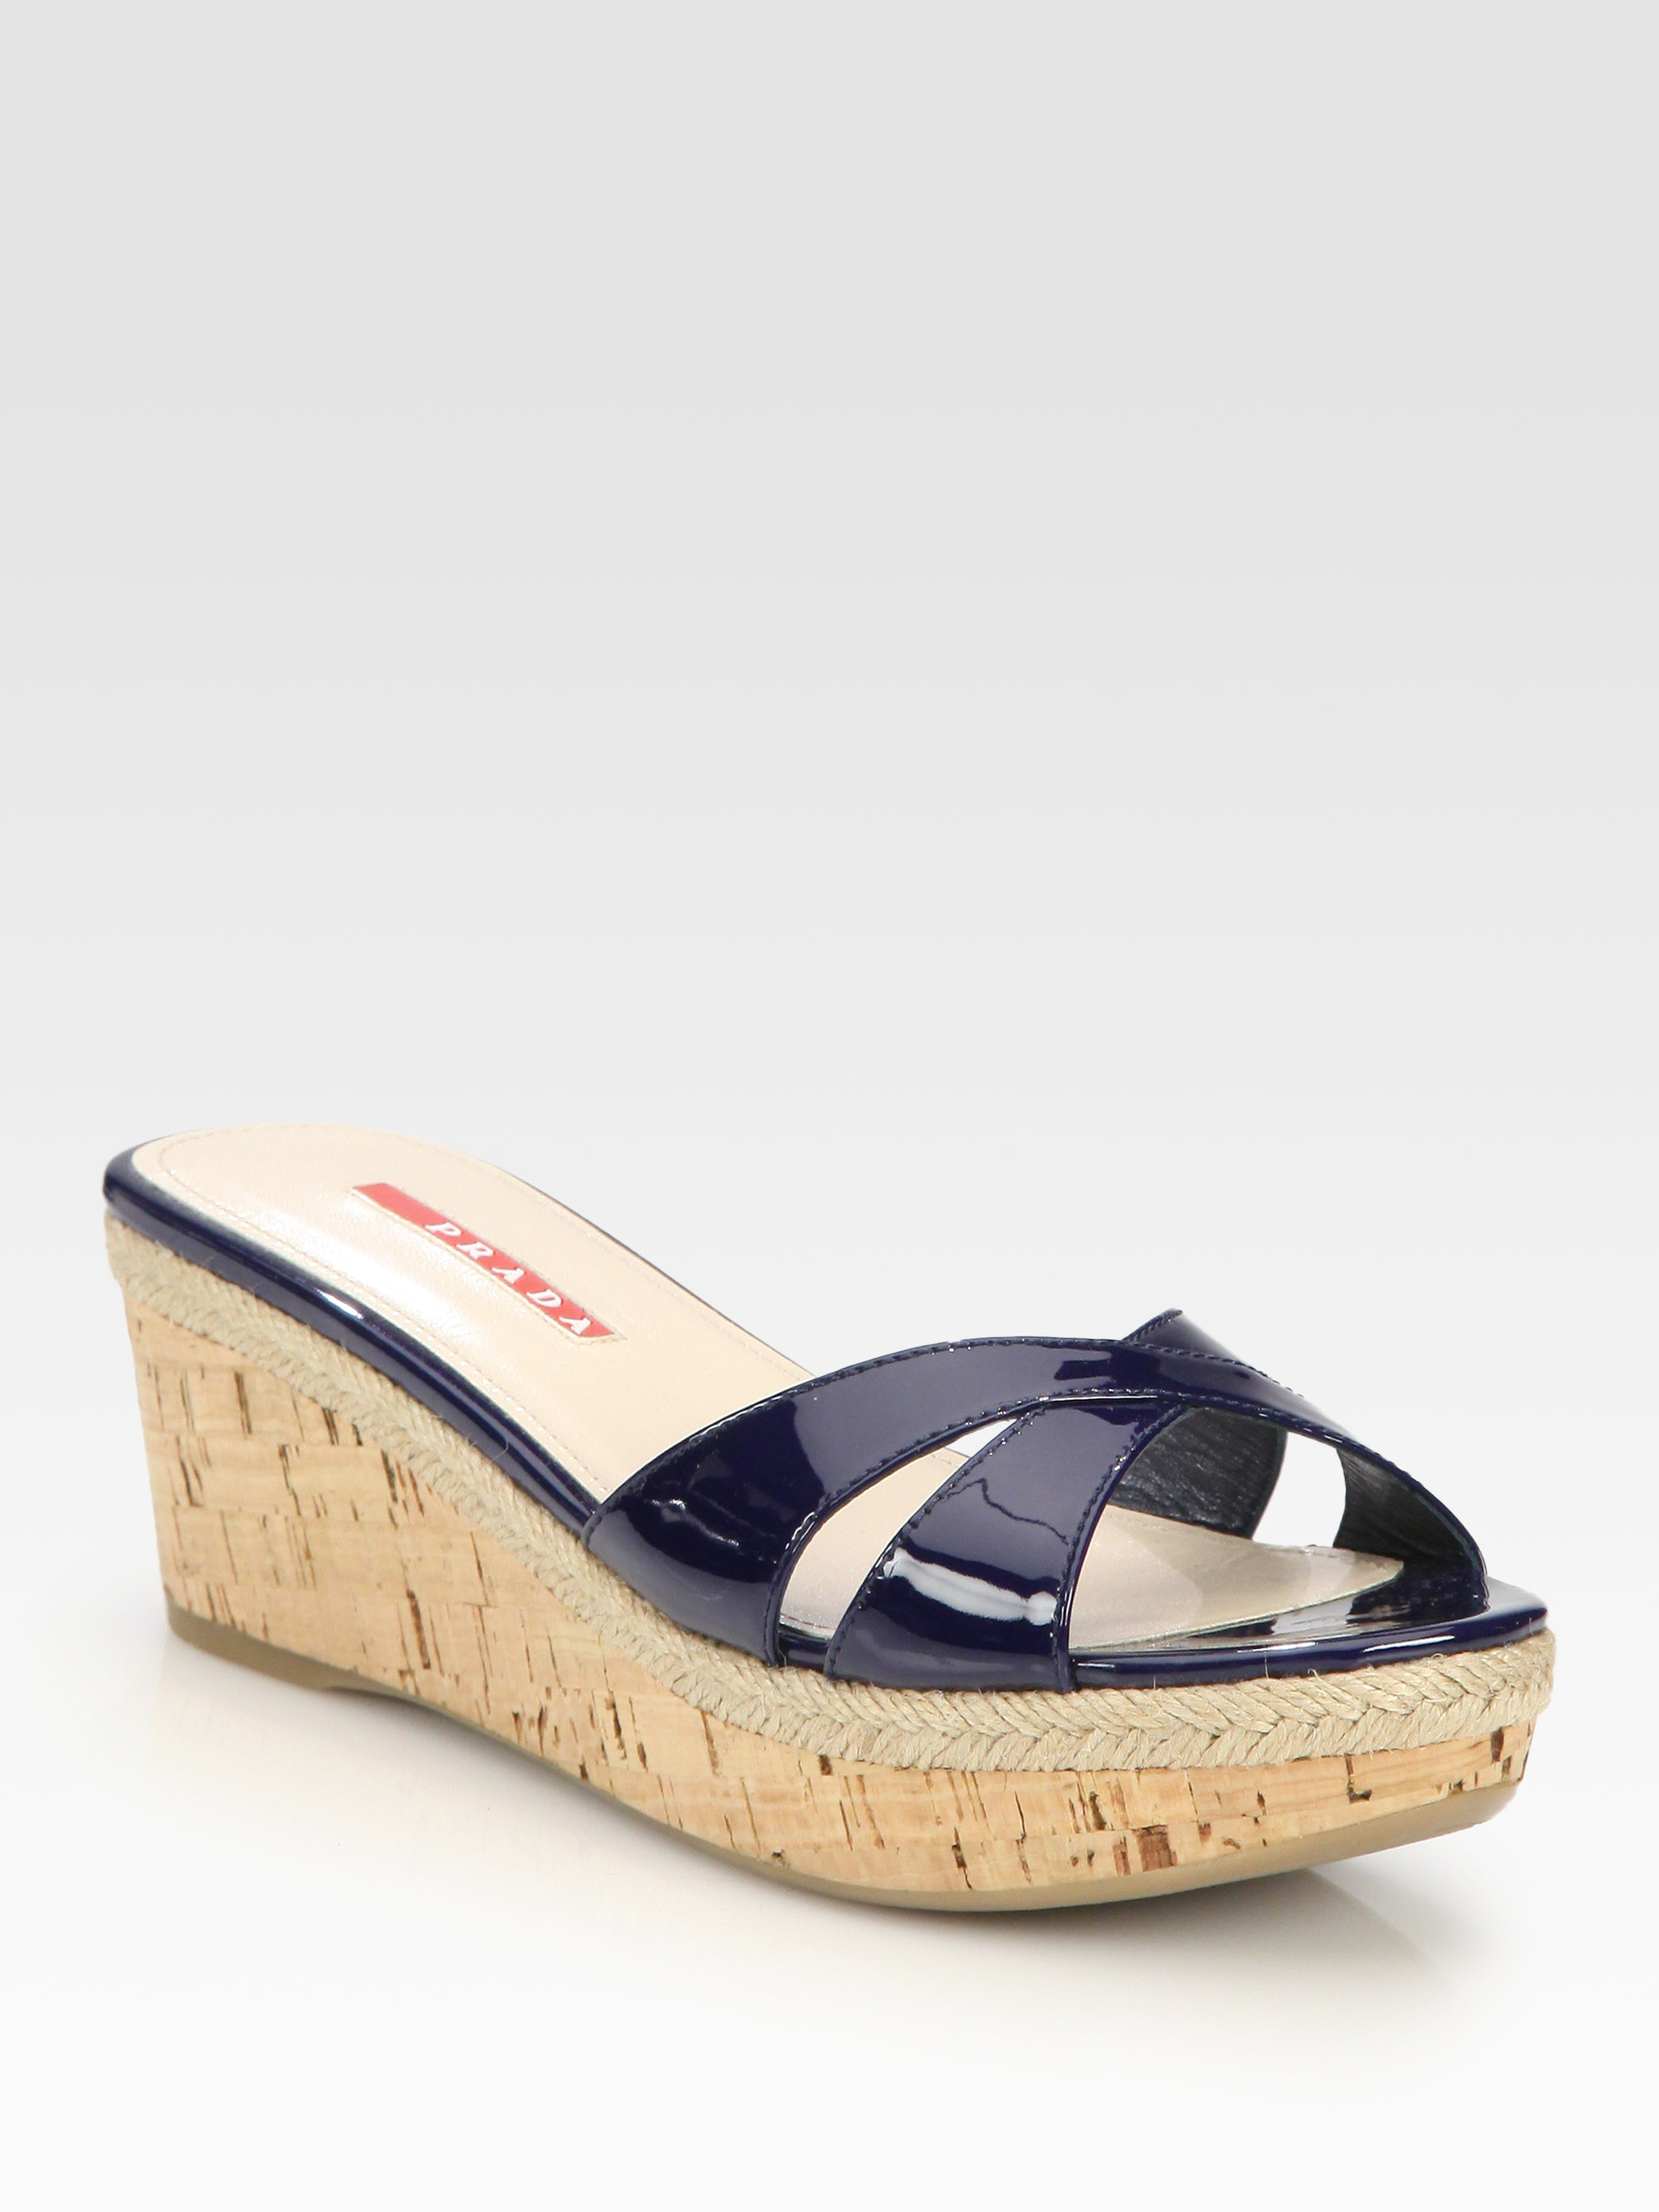 Prada Patent Leather Cork Wedge Slides in Blue (navy) | Lyst